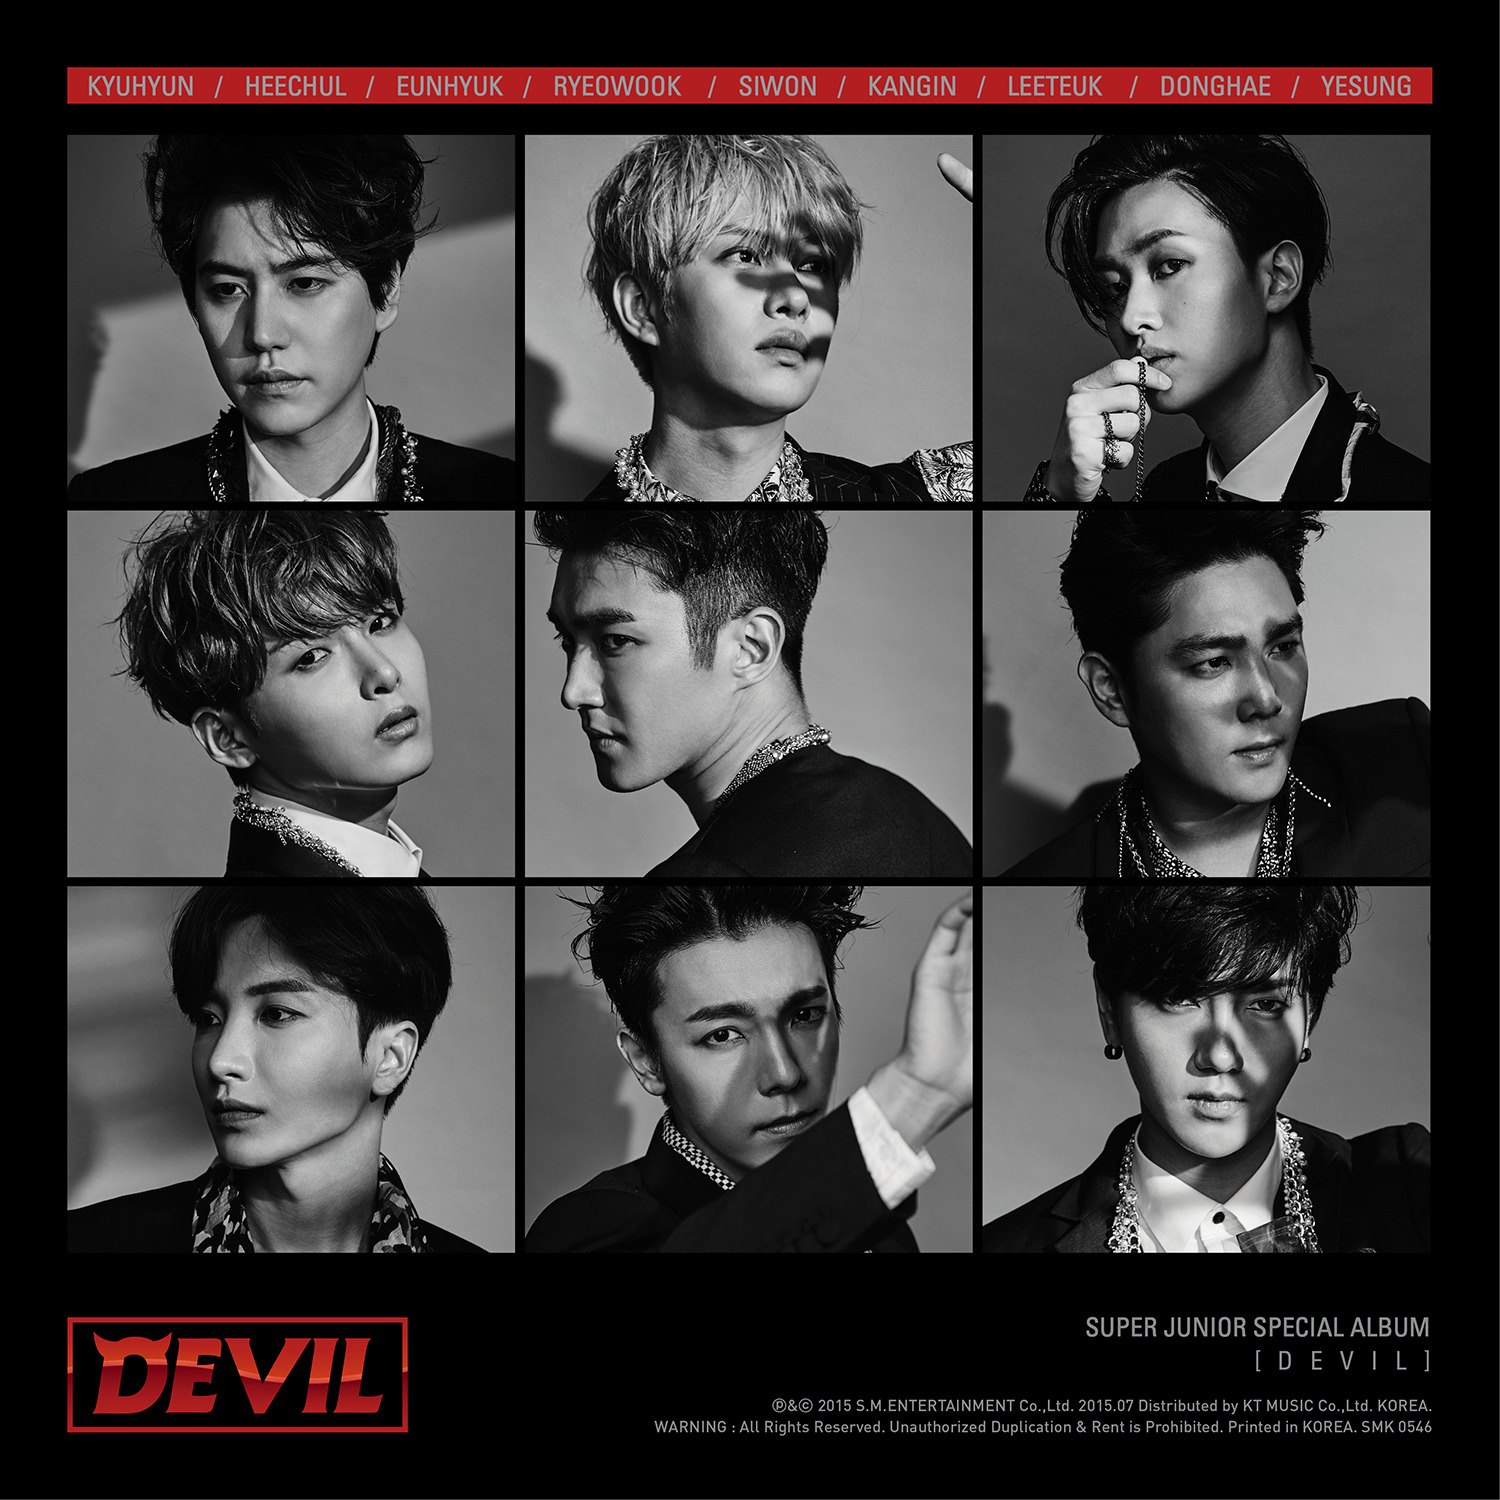 DEVIL - SUPER JUNIOR SPECIAL ALBUM 앨범정보